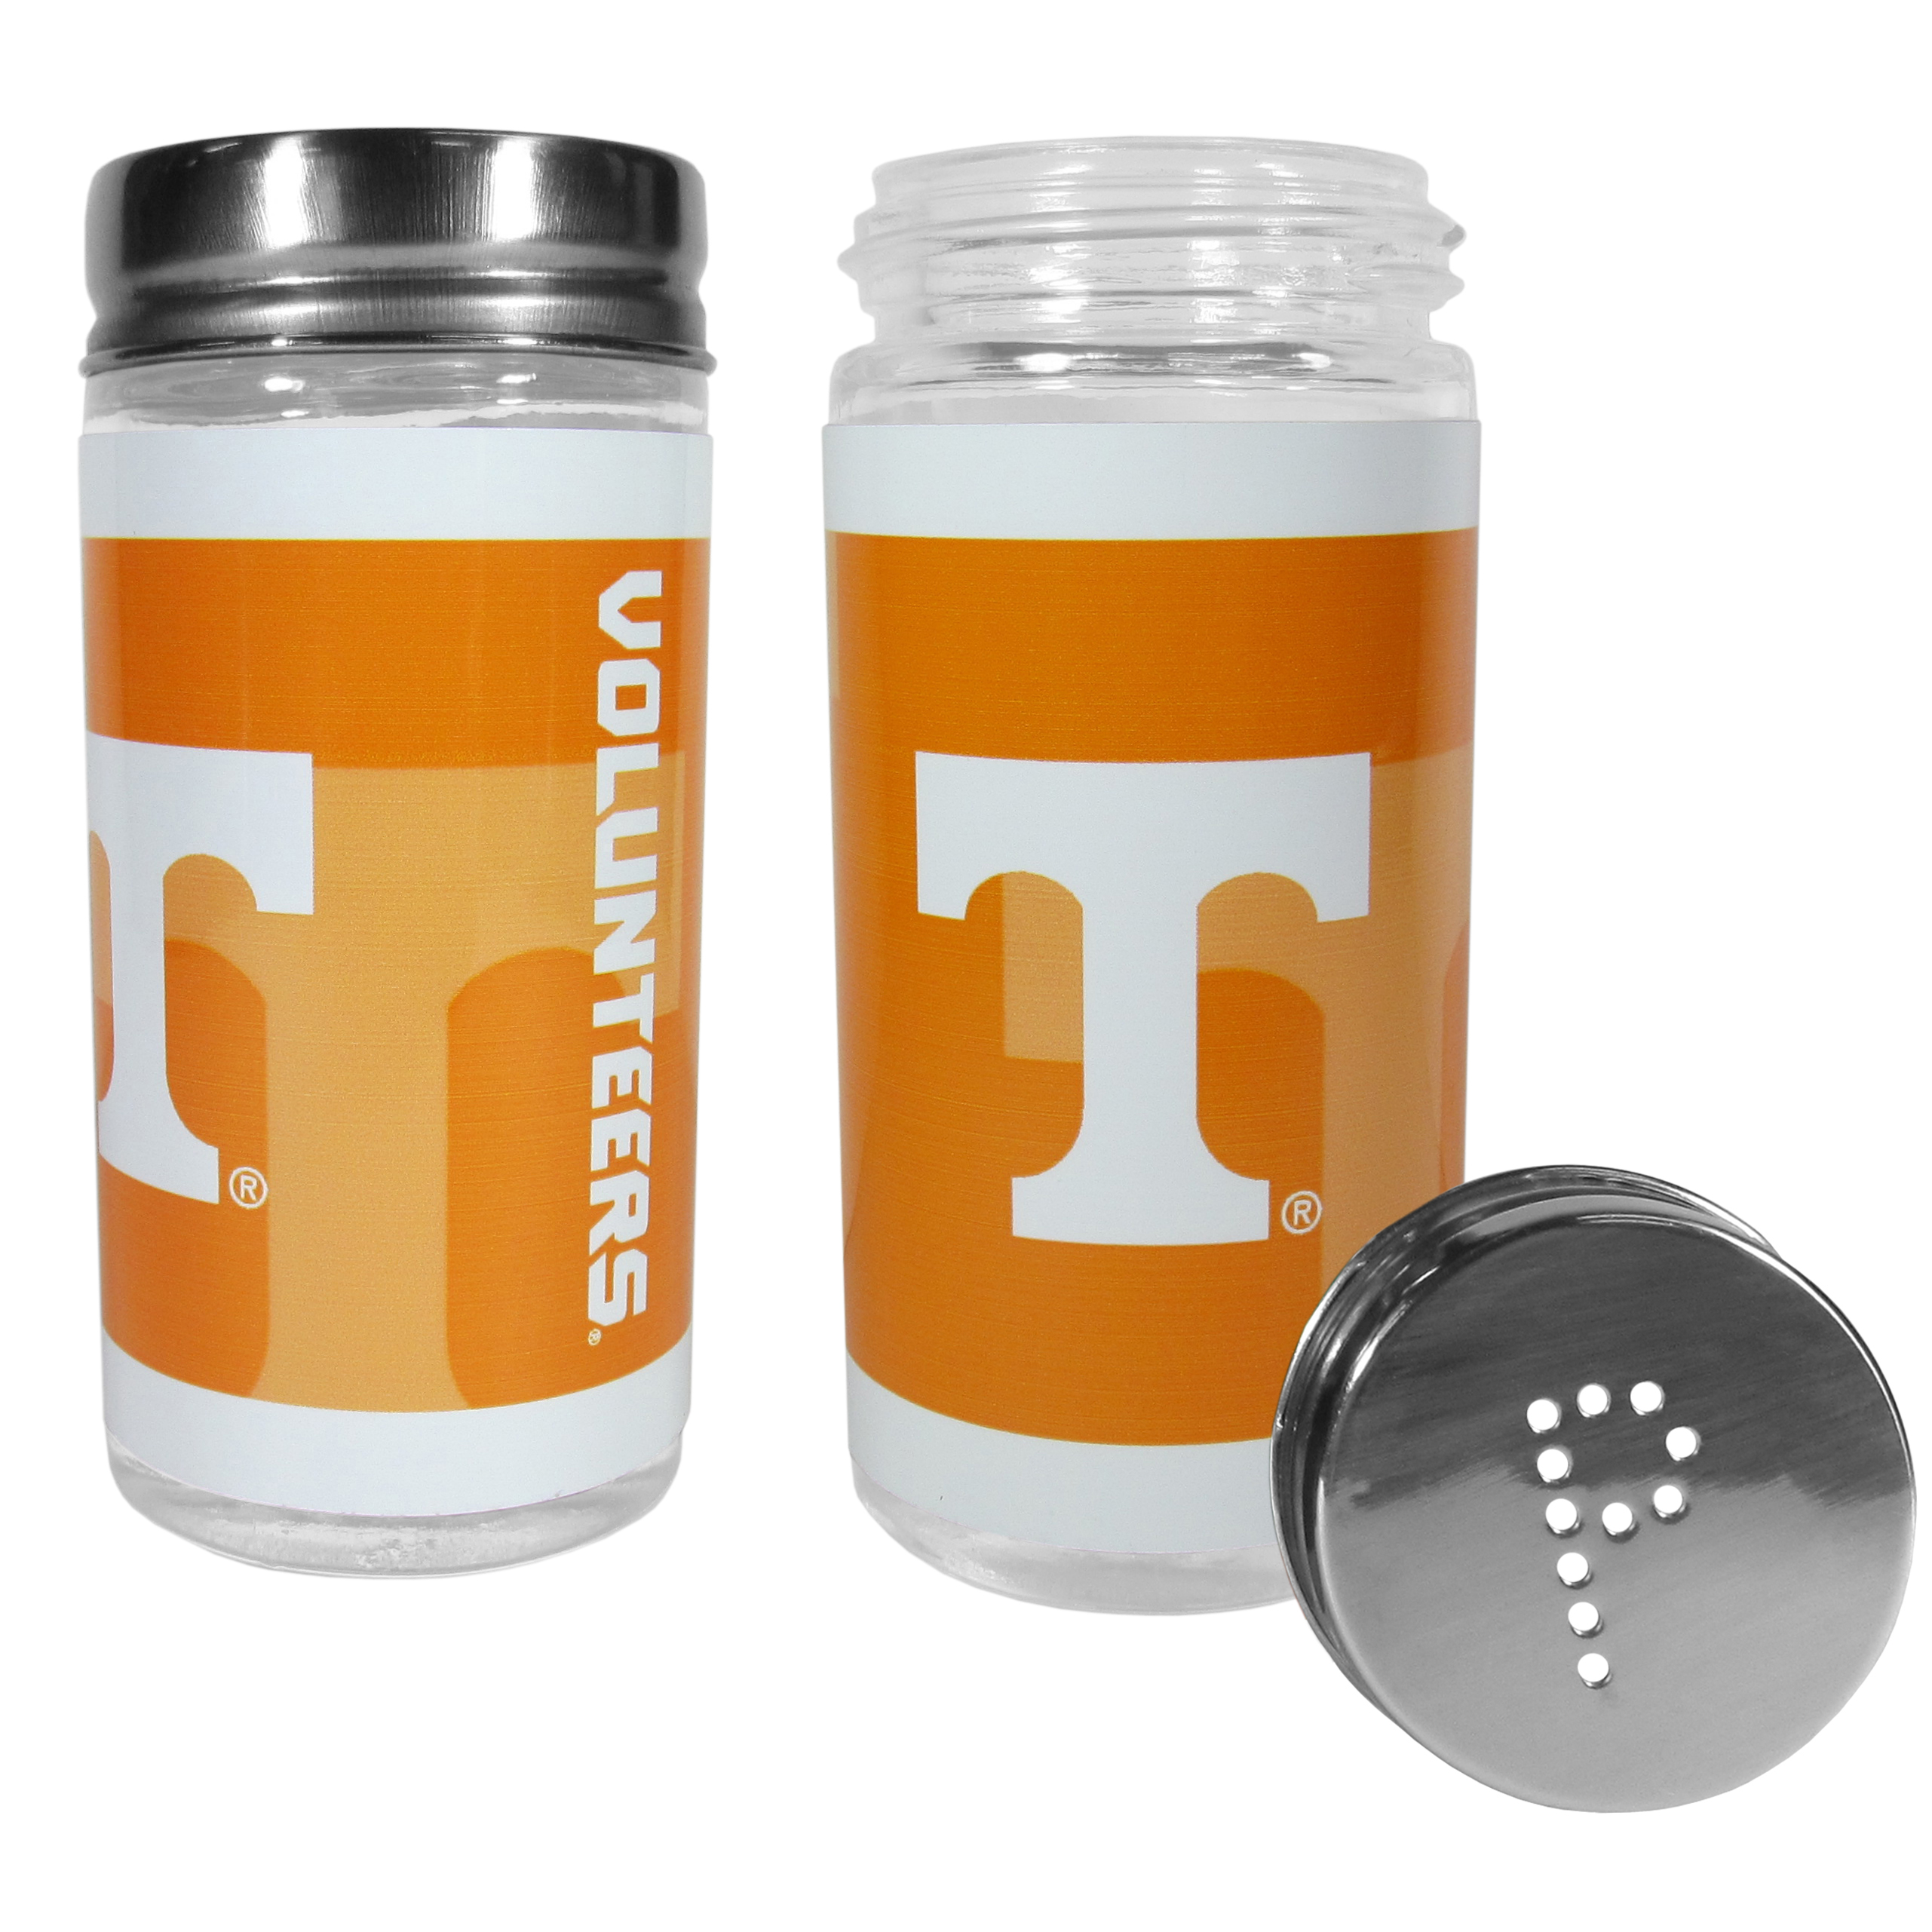 Tennessee Volunteers Tailgater Salt & Pepper Shakers - No tailgate party is complete without your Tennessee Volunteers salt & pepper shakers featuring bright team graphics. The glass shakers are 3.75 inches tall and the screw top lids have holes that spell out P and S. These team shakers are a great grill accessory whether you are barbecuing on the patio, picnicing or having a game day party.